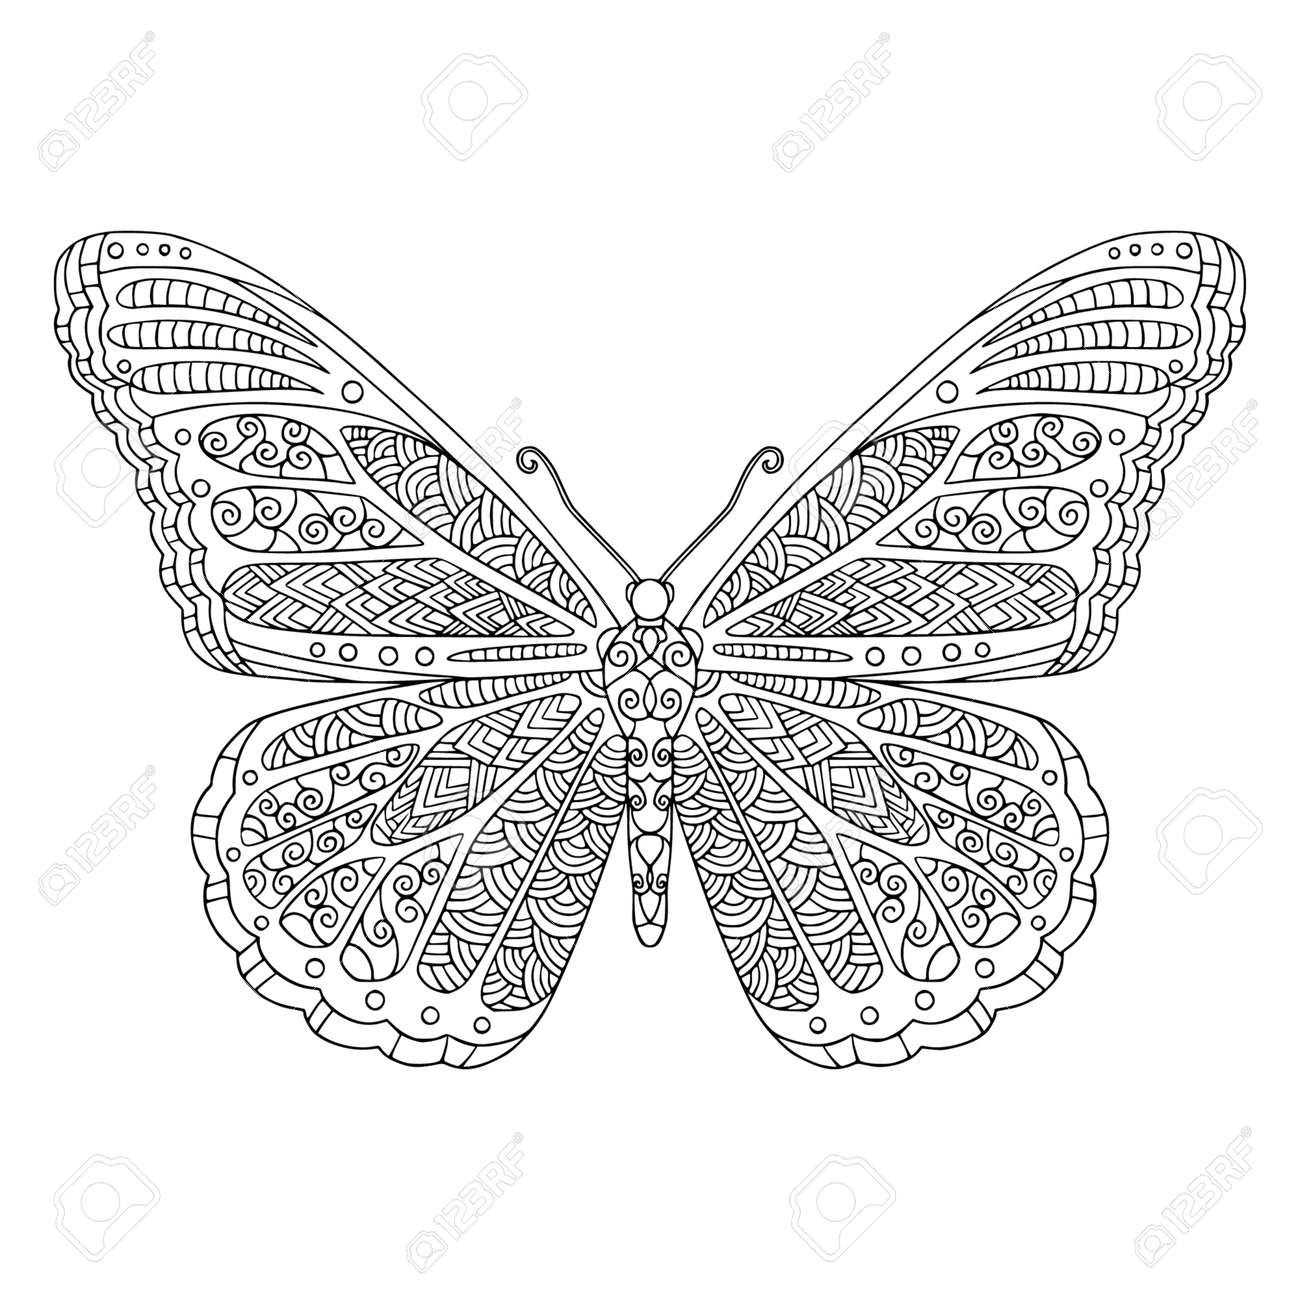 Tropical butterfly with decorated wings coloring page. Vector outline illustration with doodle elements for coloring book for adult. Lovely garden insect. - 168292313